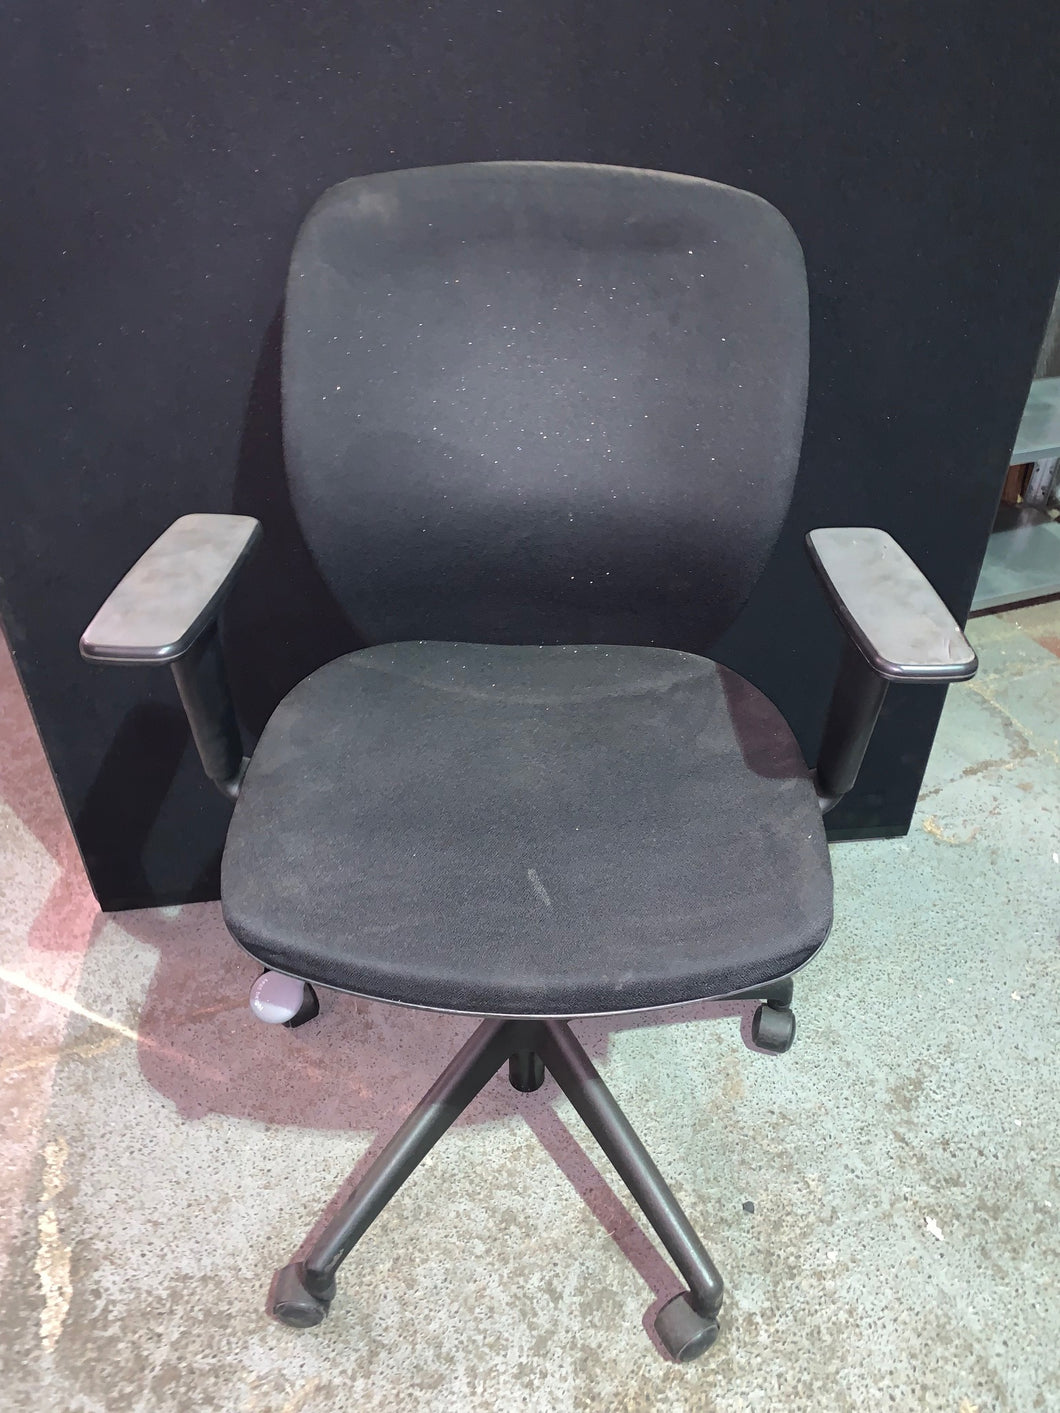 Orangebox Task Chair Black - Flogit2us.com